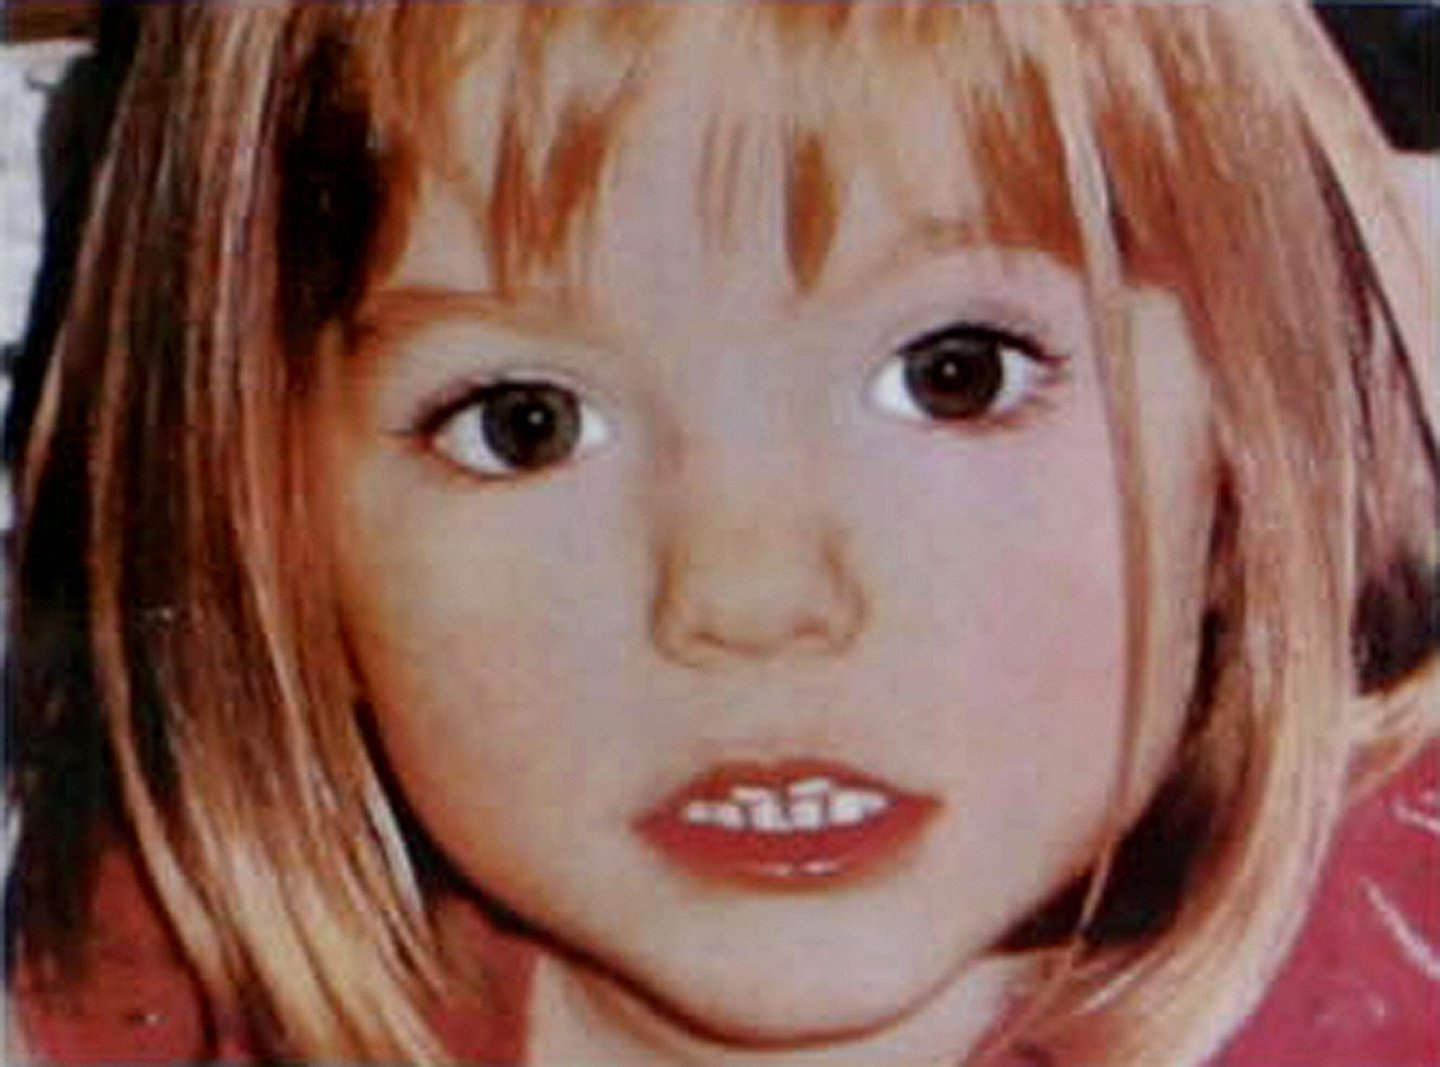 Lagos, PORTUGAL: A poster displaying the front page of the British newspaper The Sun shows 05 May 2007 a picture of three-year old British girl Madelaine McCann who went missing at the Ocean club apartment hotel in Praia de Luz , in Lagos. A team of three British police detectives arrived in Portugal today to help track down a suspected kidnapper believed to have abducted a British toddler. AFP PHOTO/- NO SALES (Photo credit should read -/AFP/Getty Images)